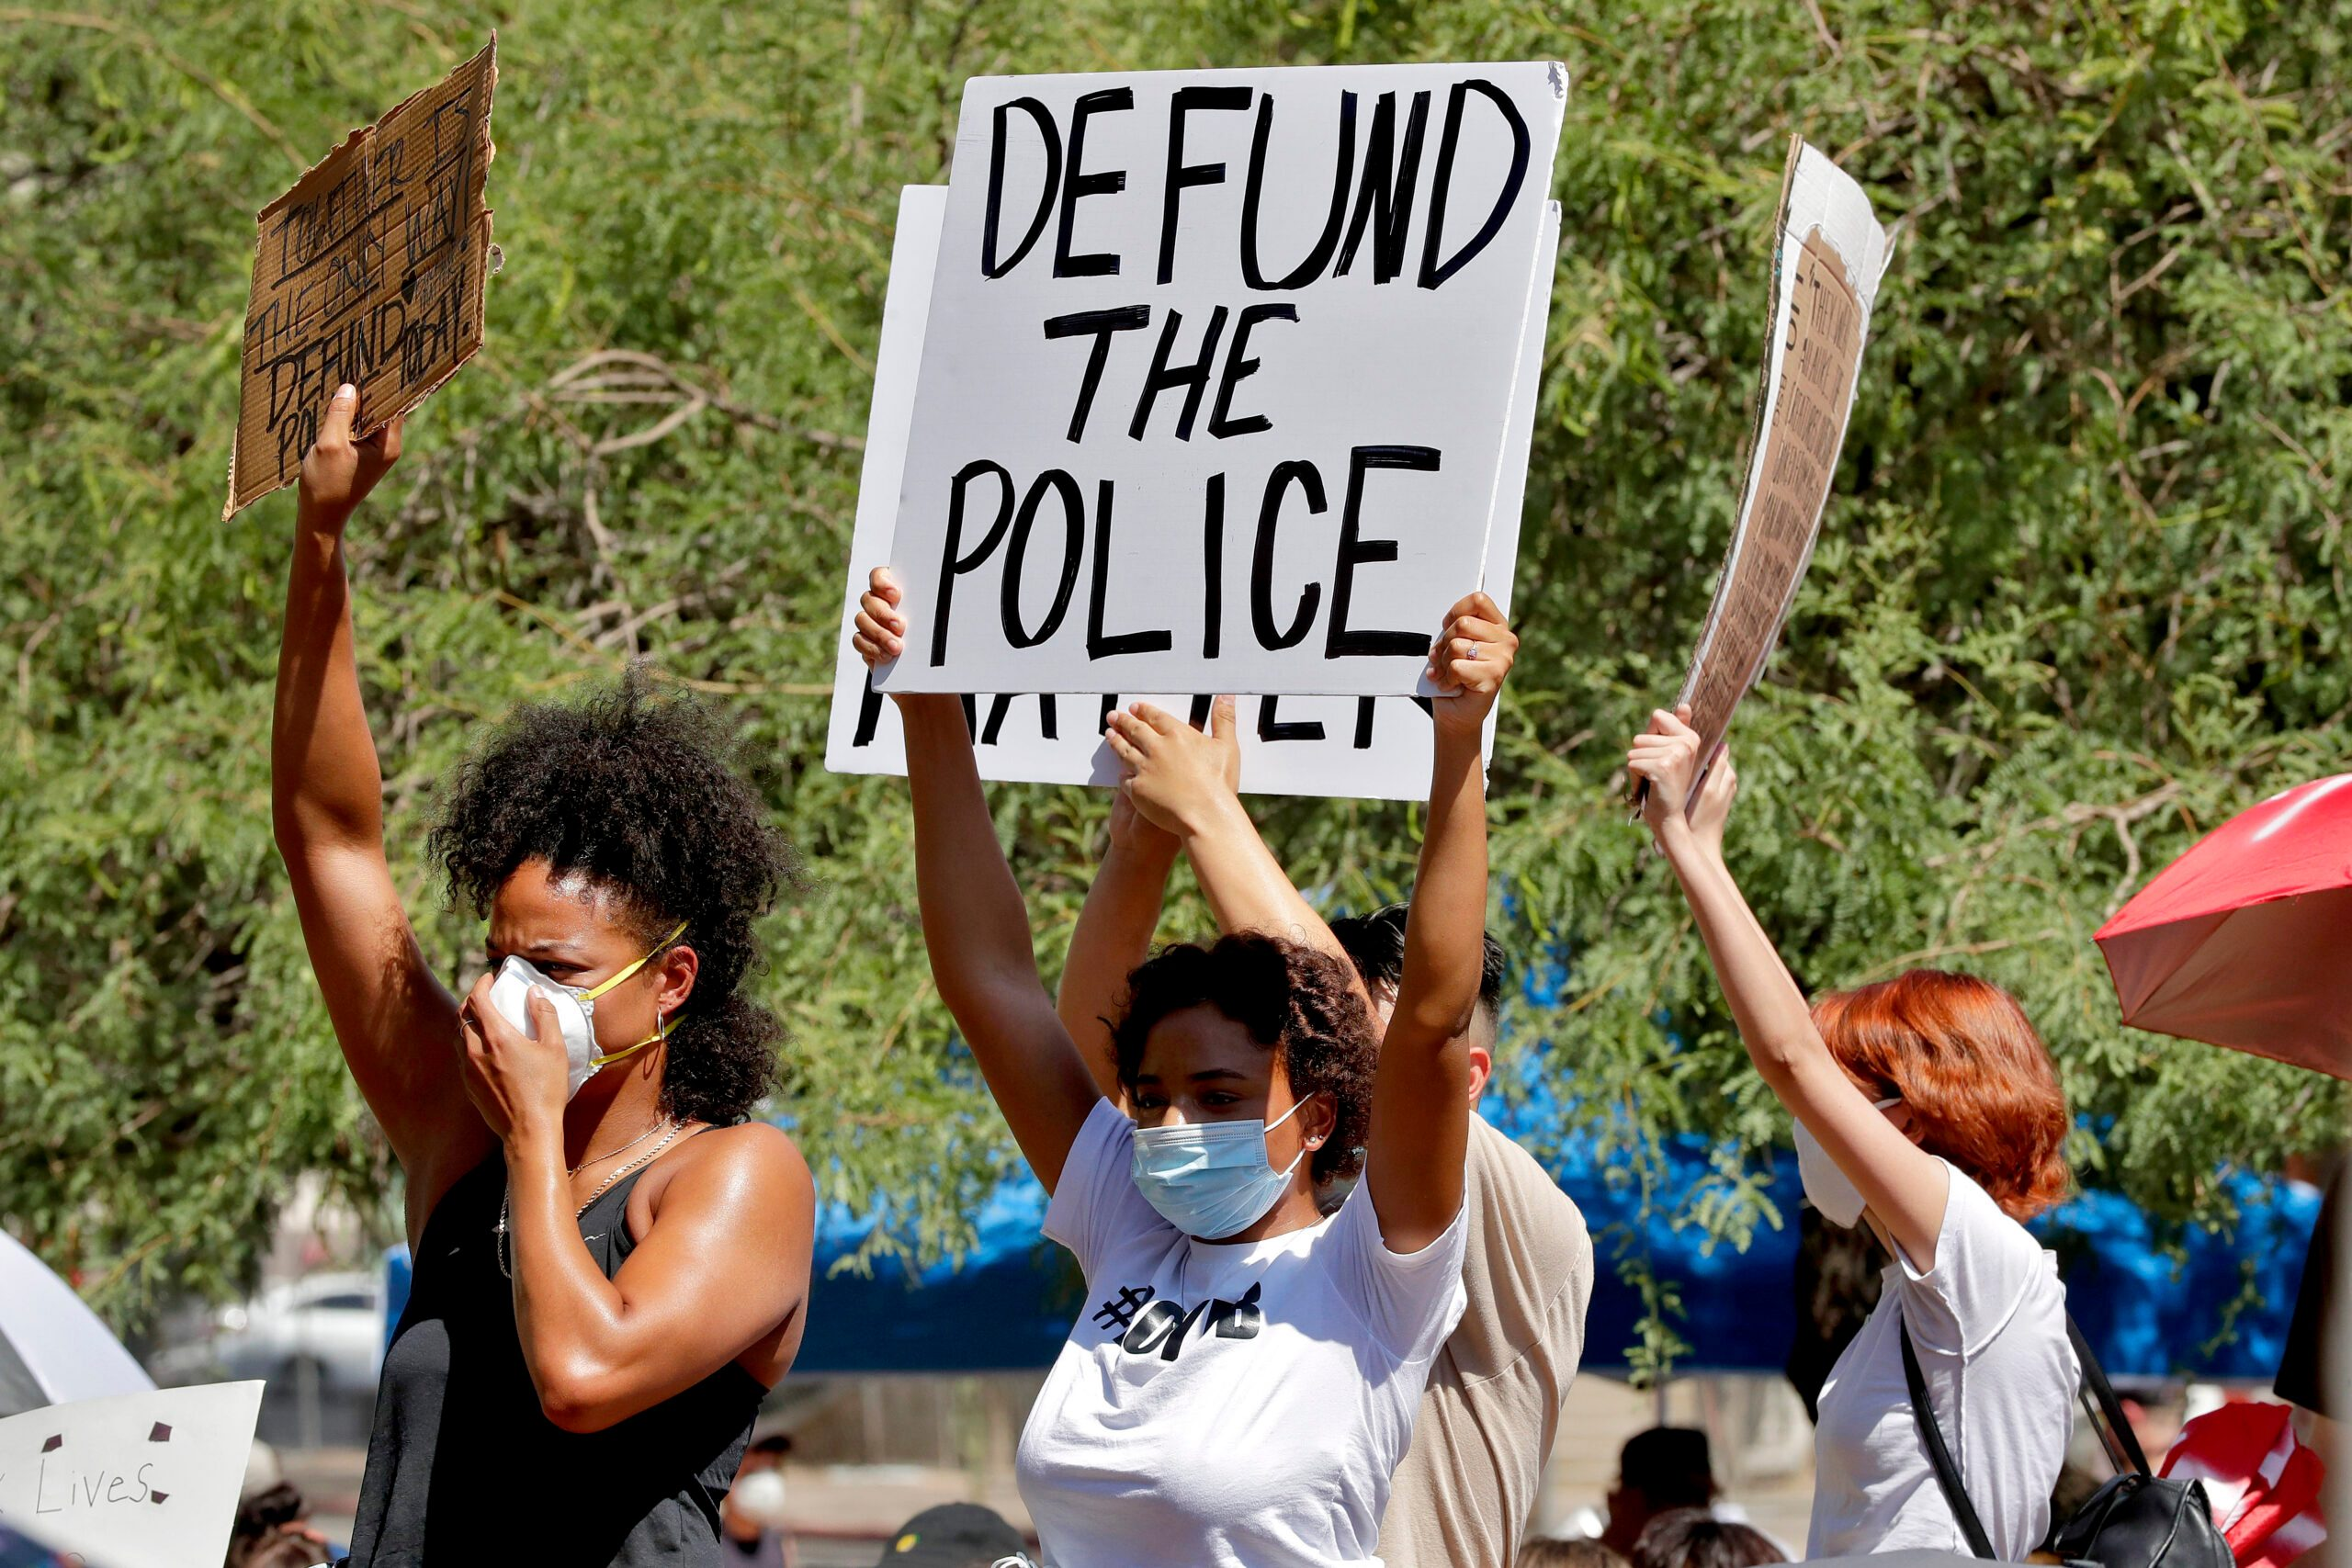 Amid Reform Movement, Some GOP States Give Police More Power - snopes